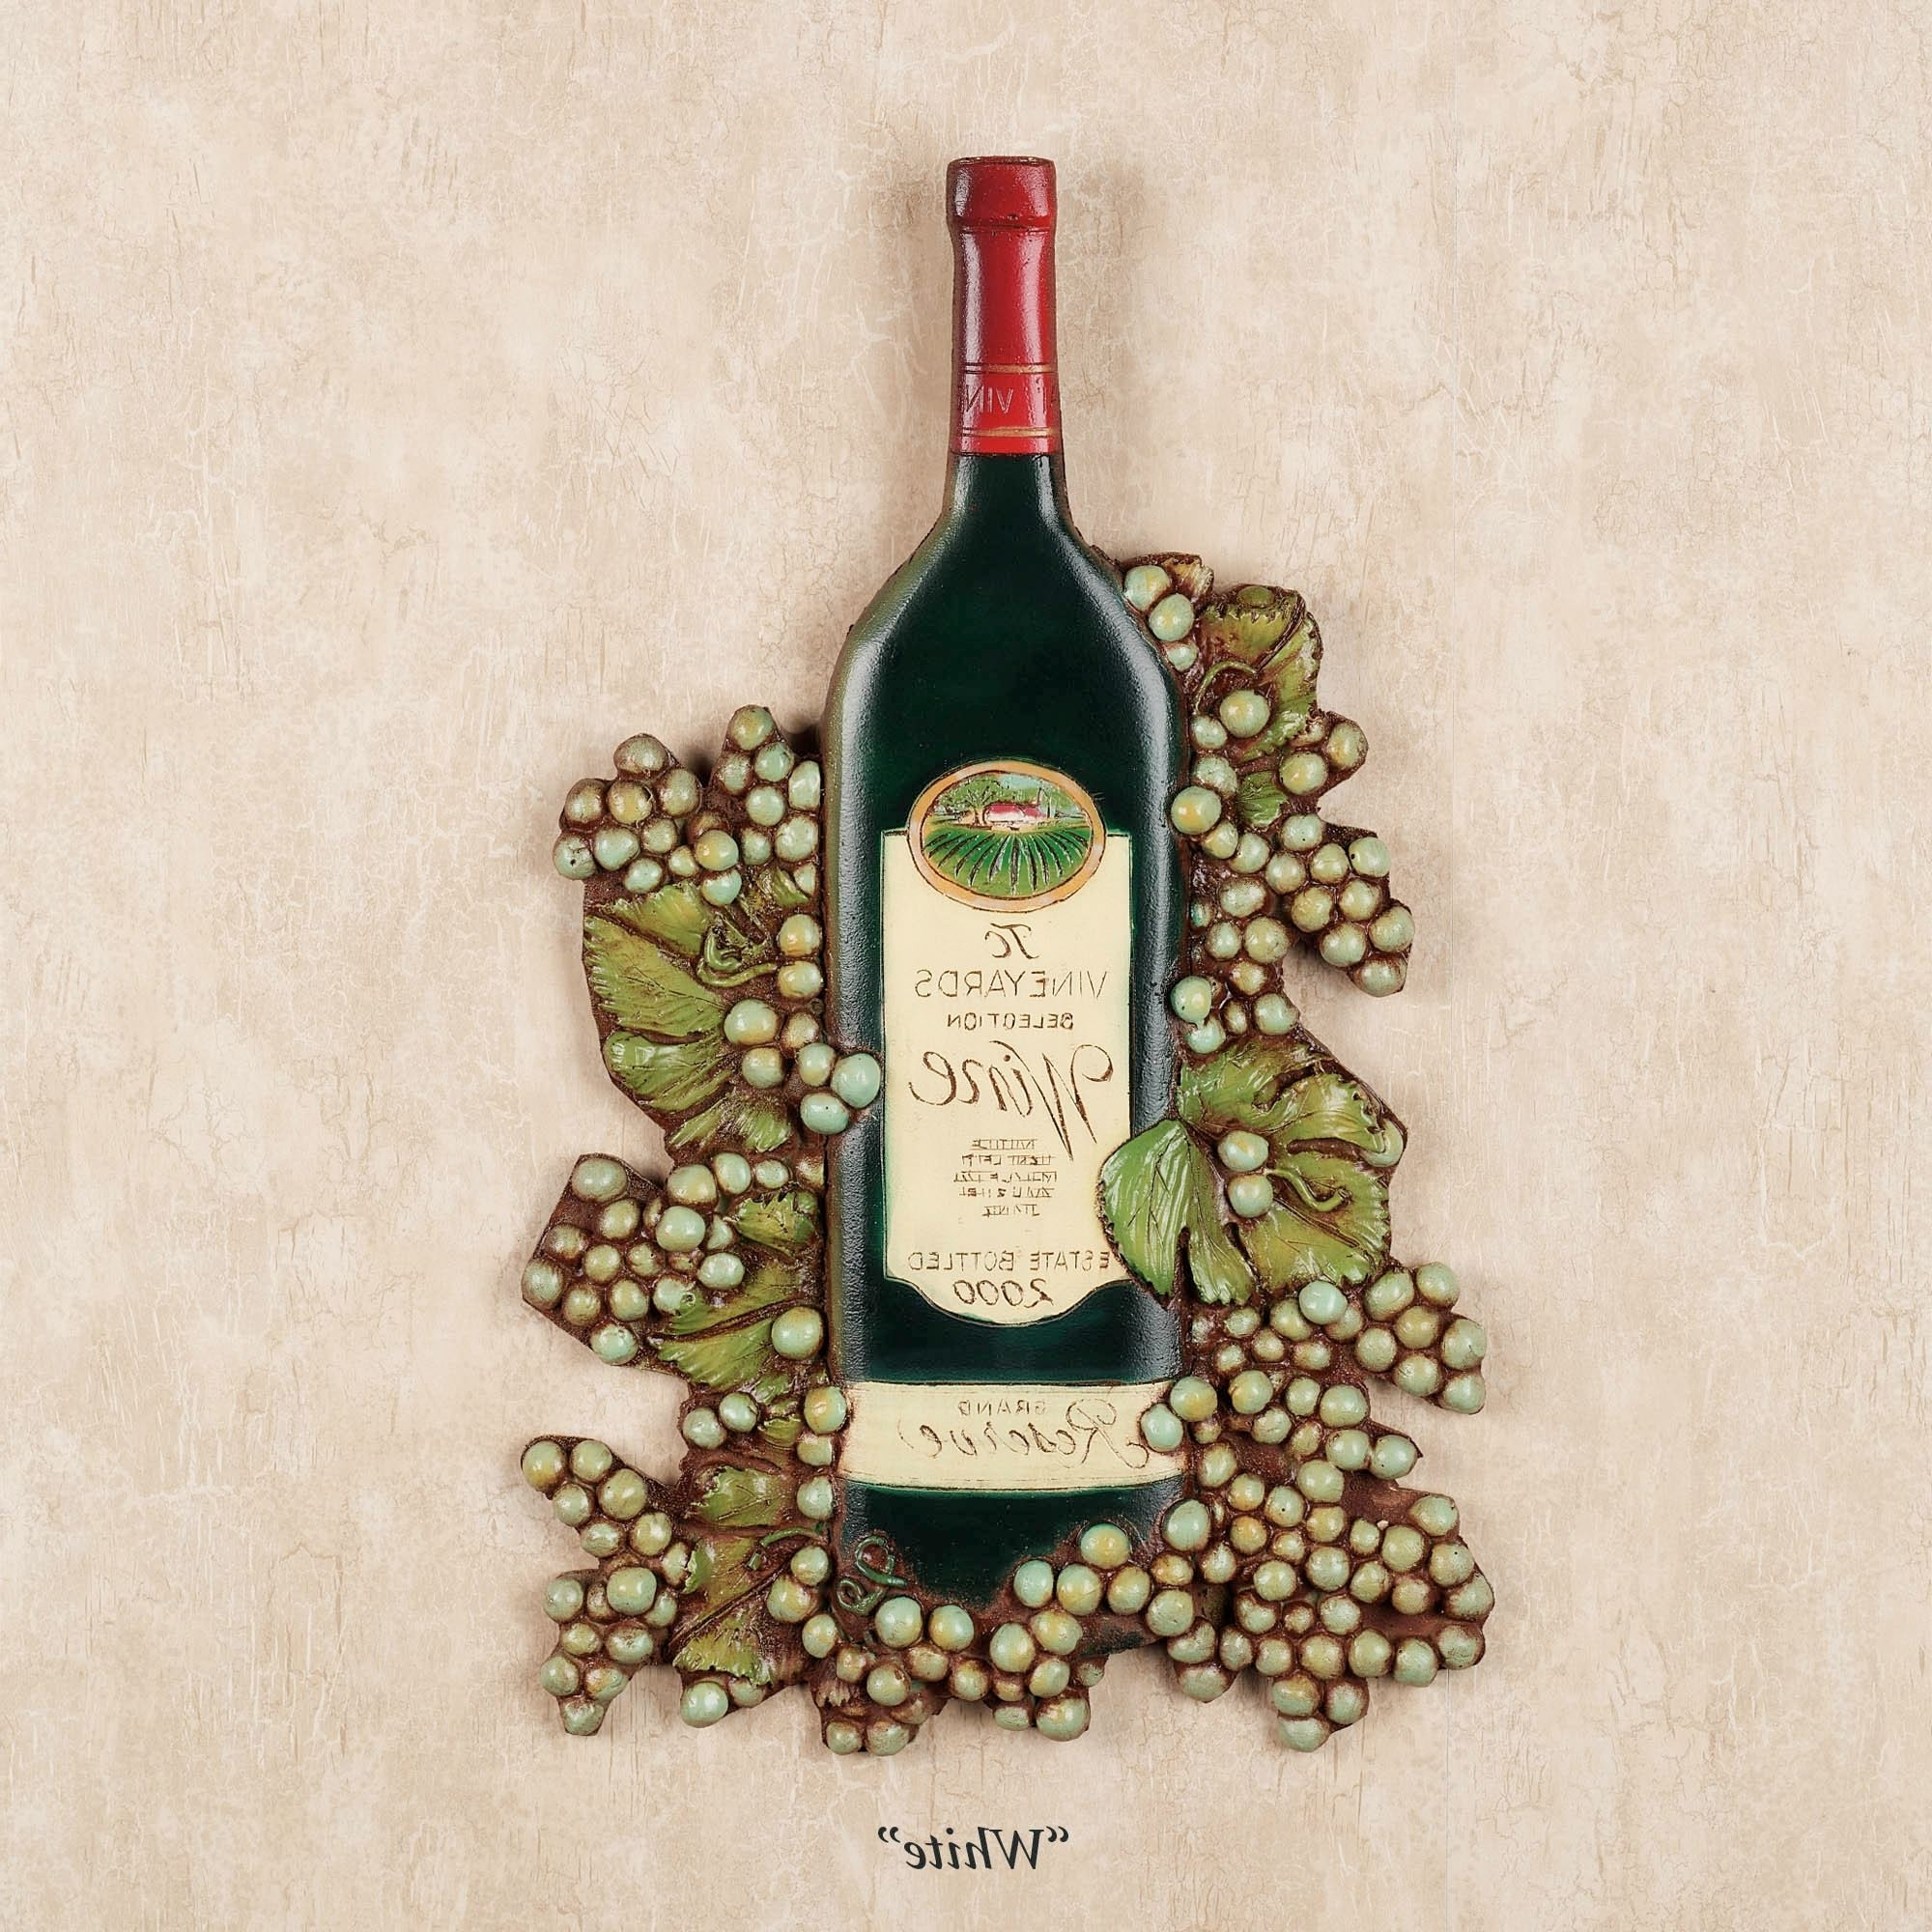 Wine Bottle Wall Plaque Within Most Current Italian Wine Wall Art (View 13 of 15)